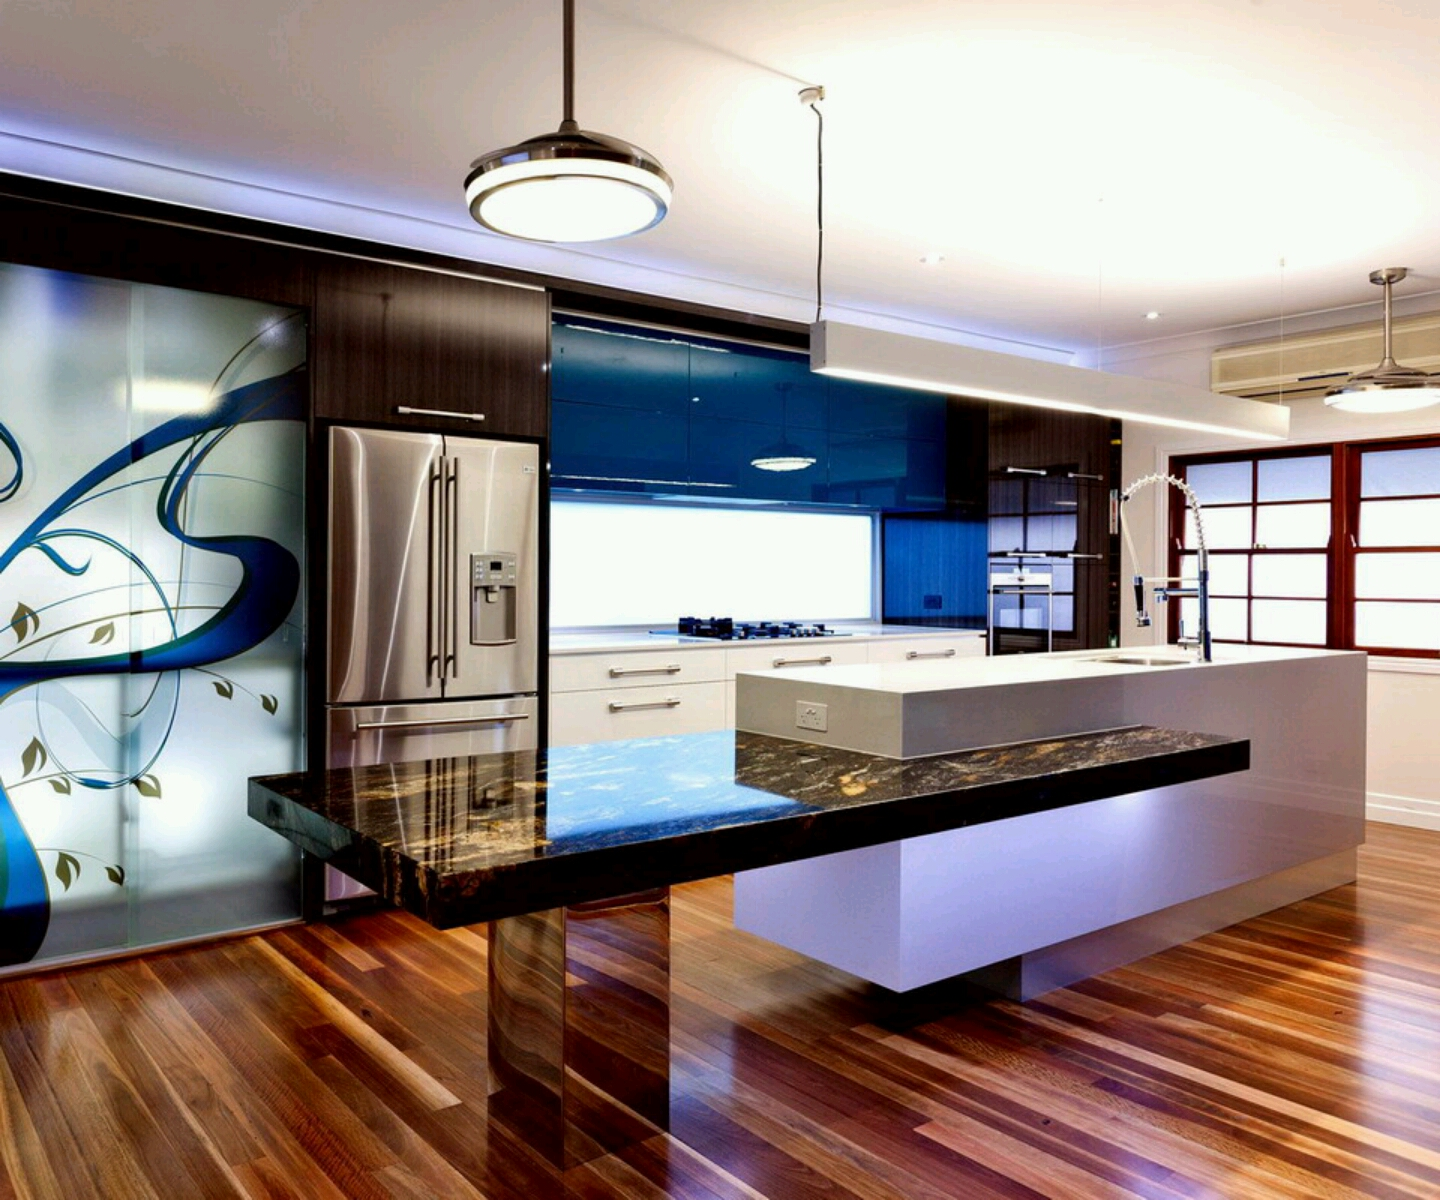 Ultra modern kitchen designs ideas new home designs for New kitchen ideas photos